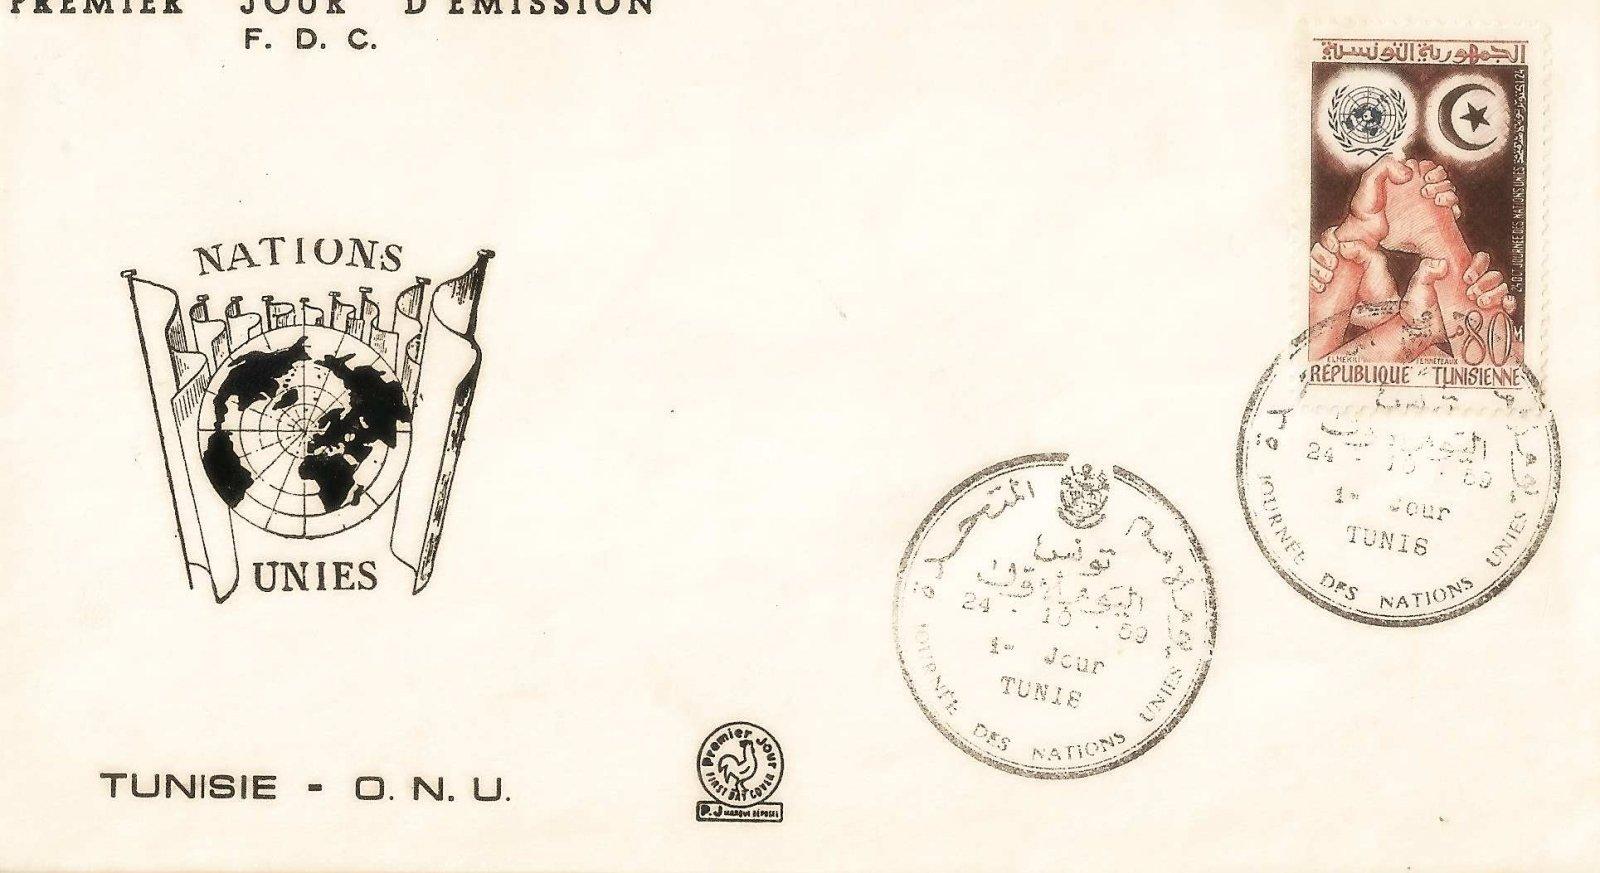 1959 FDC NATIONS UNIES TUNISIE